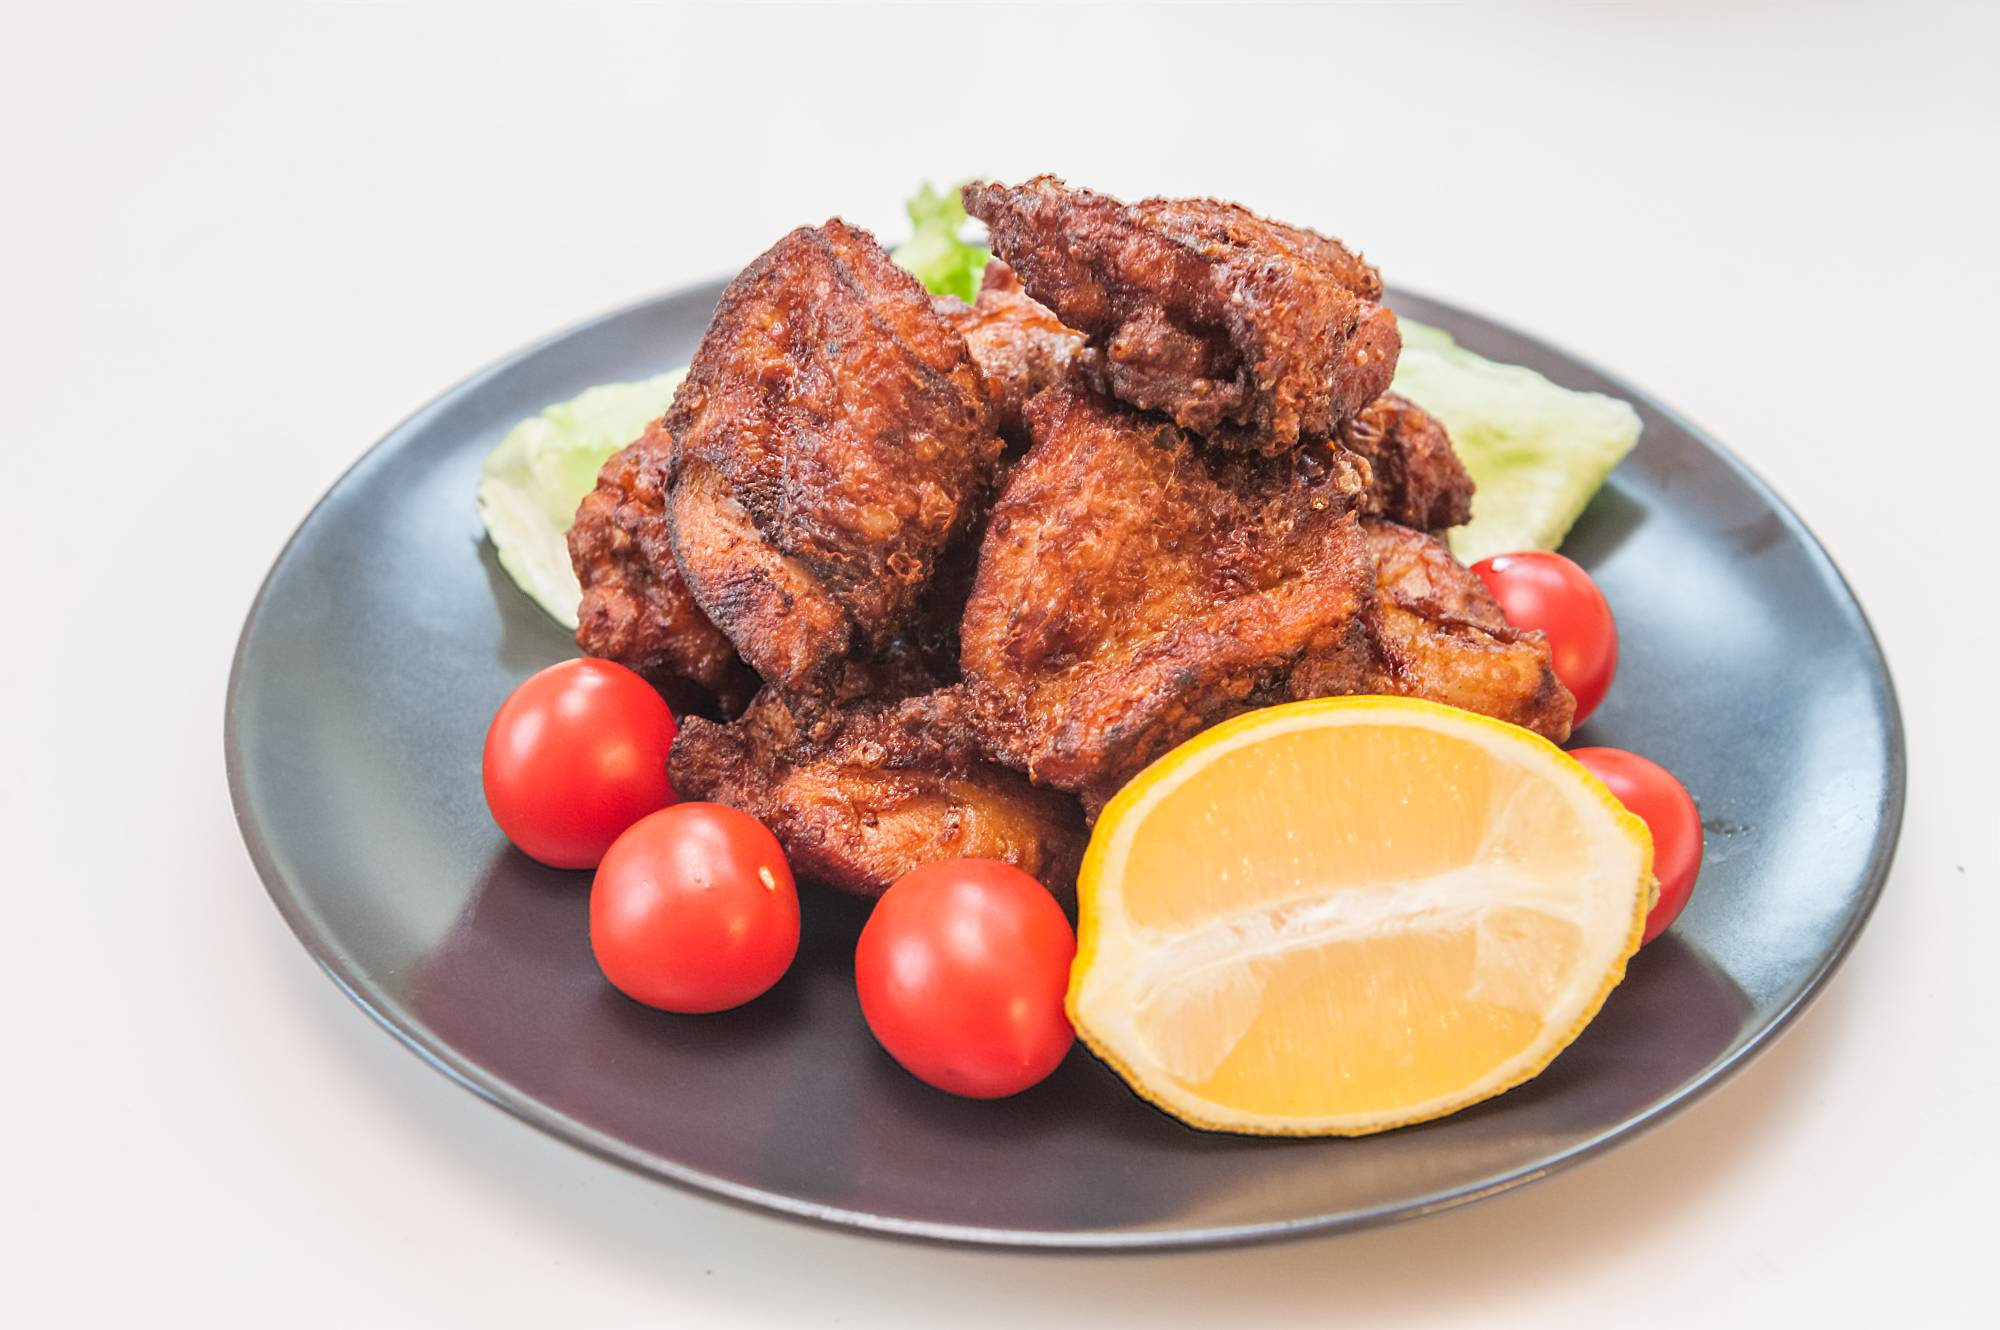 Double-fried: Zangi (Hokkaido-style fried chicken) is marinated in a slightly sweet sauce. Top with lemon juice when serving. | MAKIKO ITOH